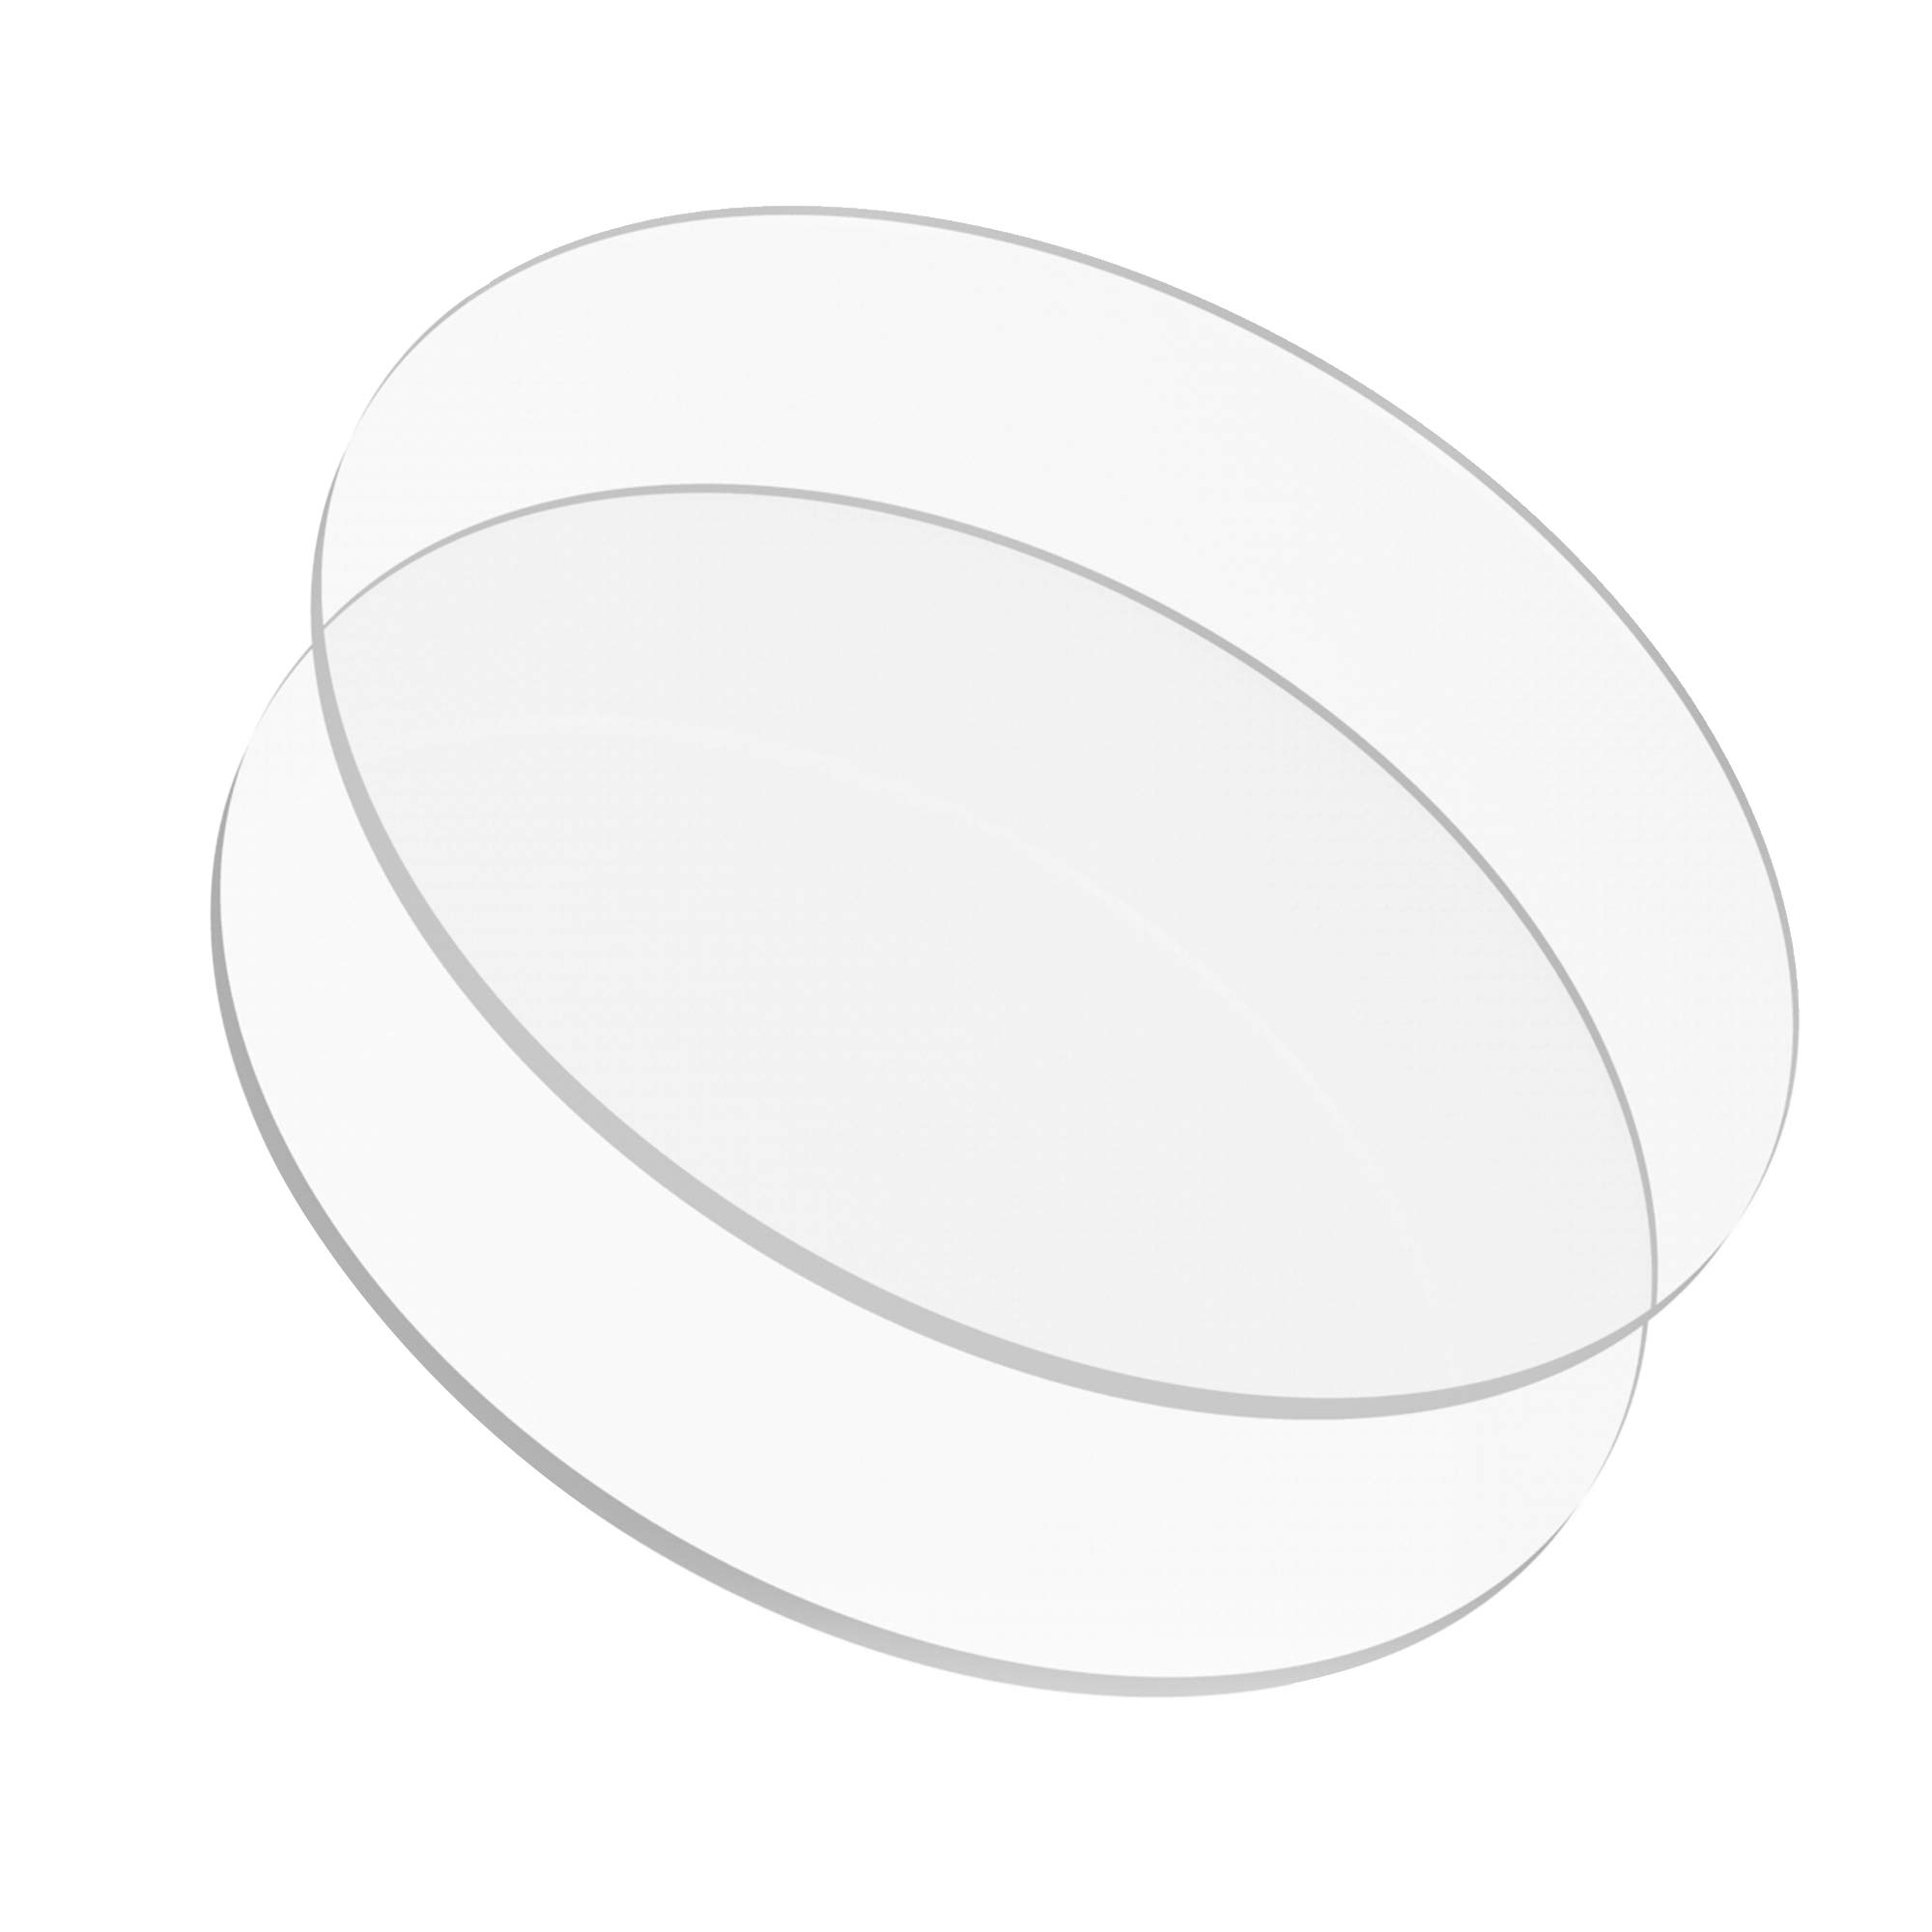 12.50 inch Buttercream Acrylic Round Cake Disks Set of 2 (0.18 or 3/16 inch thick) - Great for Serving Bake Goods and Art Craft Project